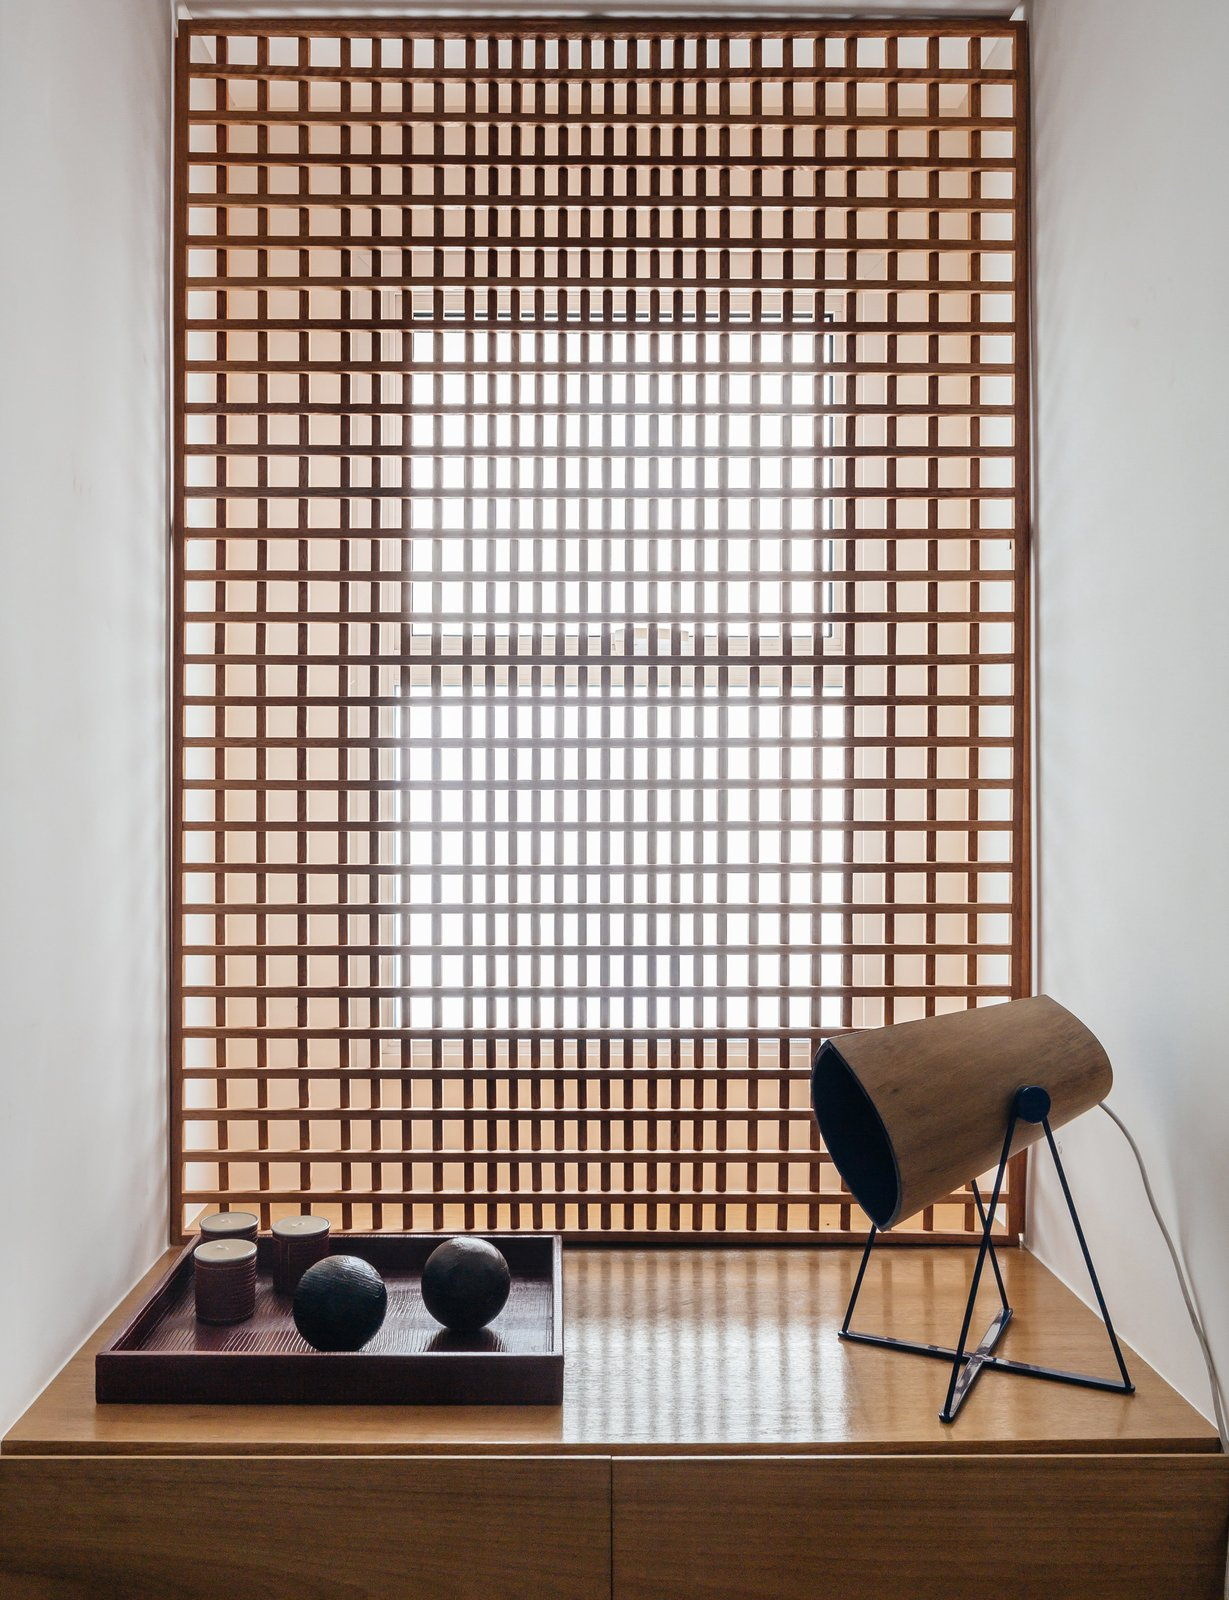 Living Room, Storage, Lamps, and Table Lighting FCstudio designed the gridded Muxarabi panel made of catuaba wood; placed in front of the home office window, it softens light to a diffuse glow.  Photo 7 of 9 in Overlooking a Niemeyer Masterpiece, This Flat is Filled with Brazilian Modern Gems